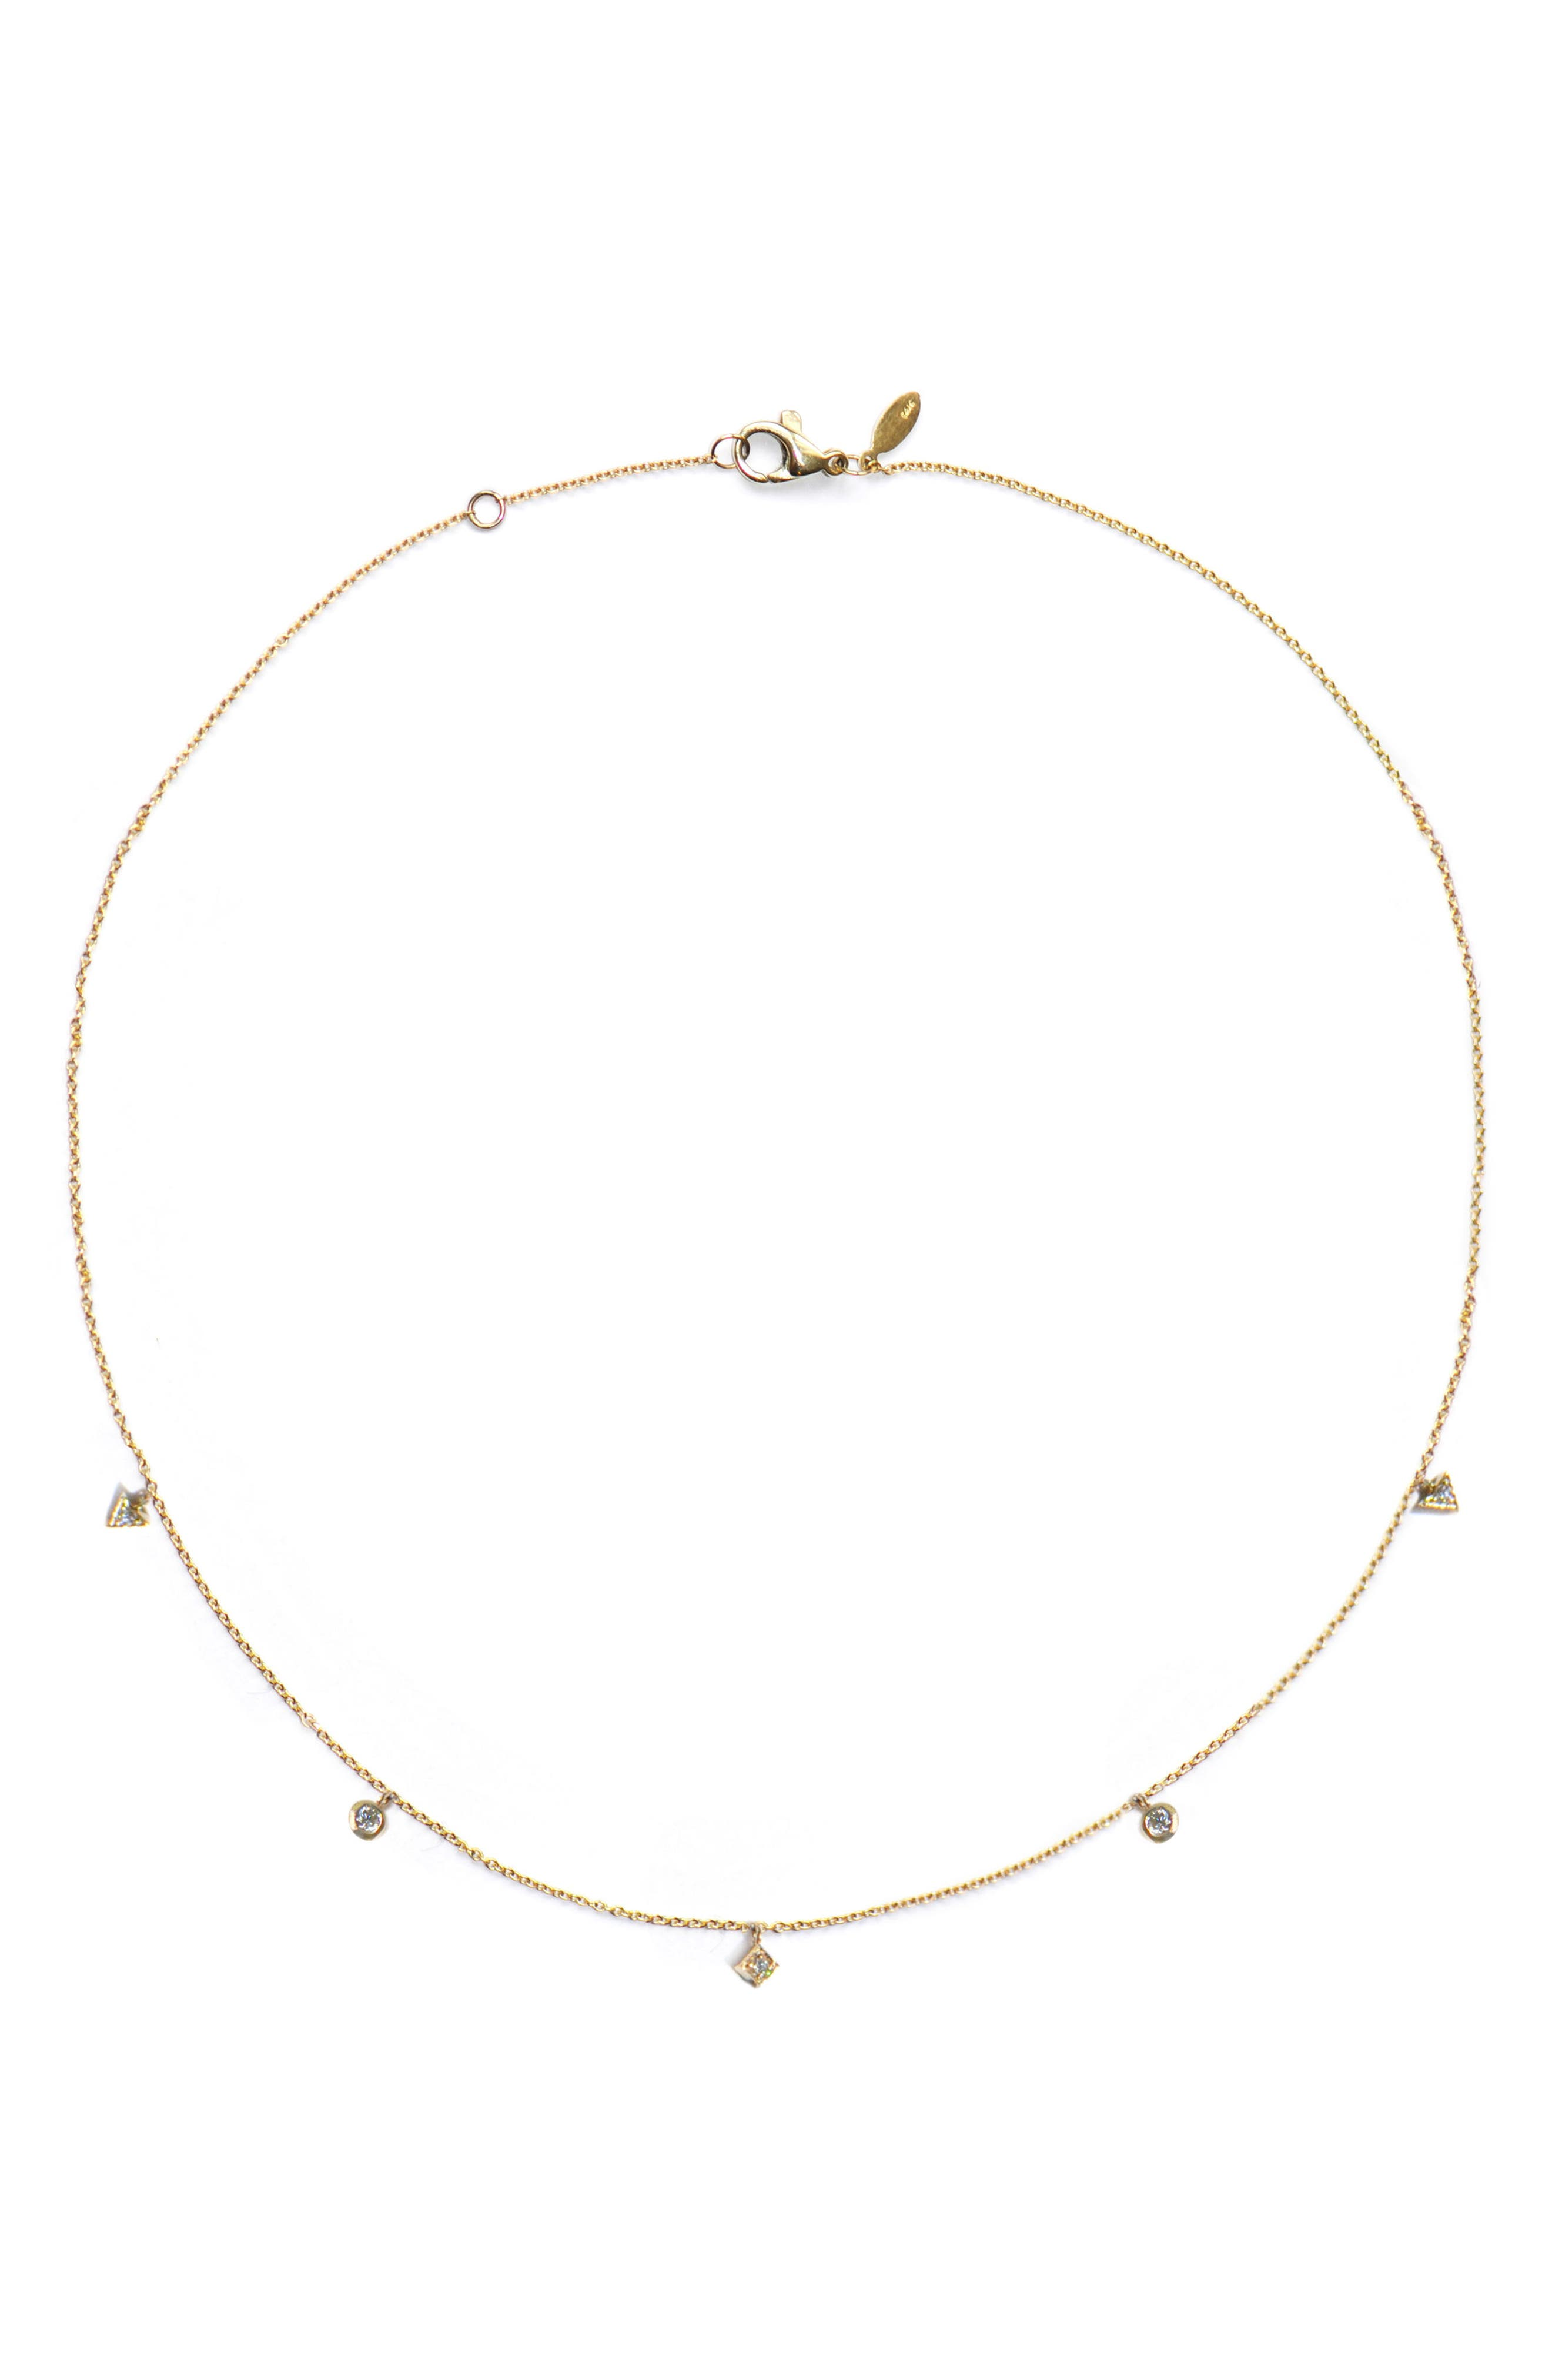 Cleo Dangling Shapes Necklace,                             Main thumbnail 1, color,                             Gold